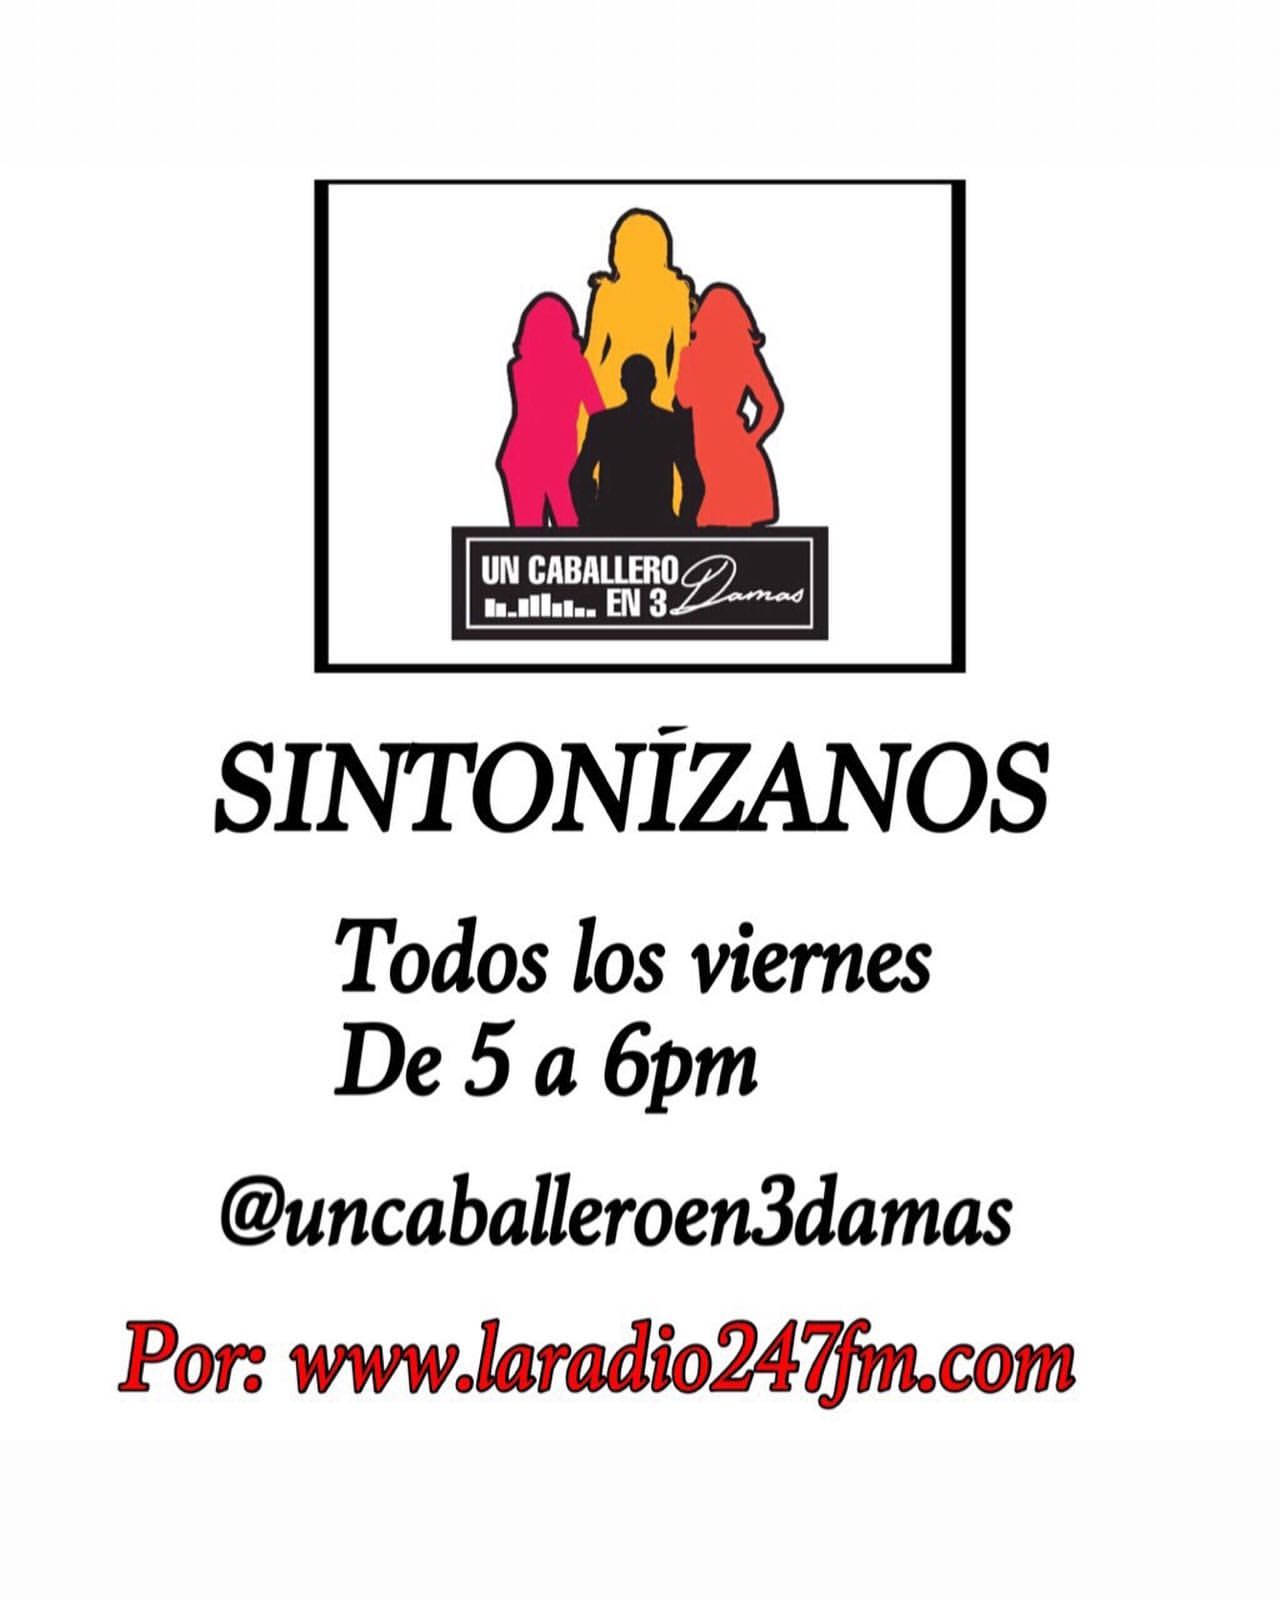 UN CABALLERO EN3 DAMAS BLOQUE 3 6 DIC #LARADIO247FM https://youtu.be/vdx6F2aDu4g